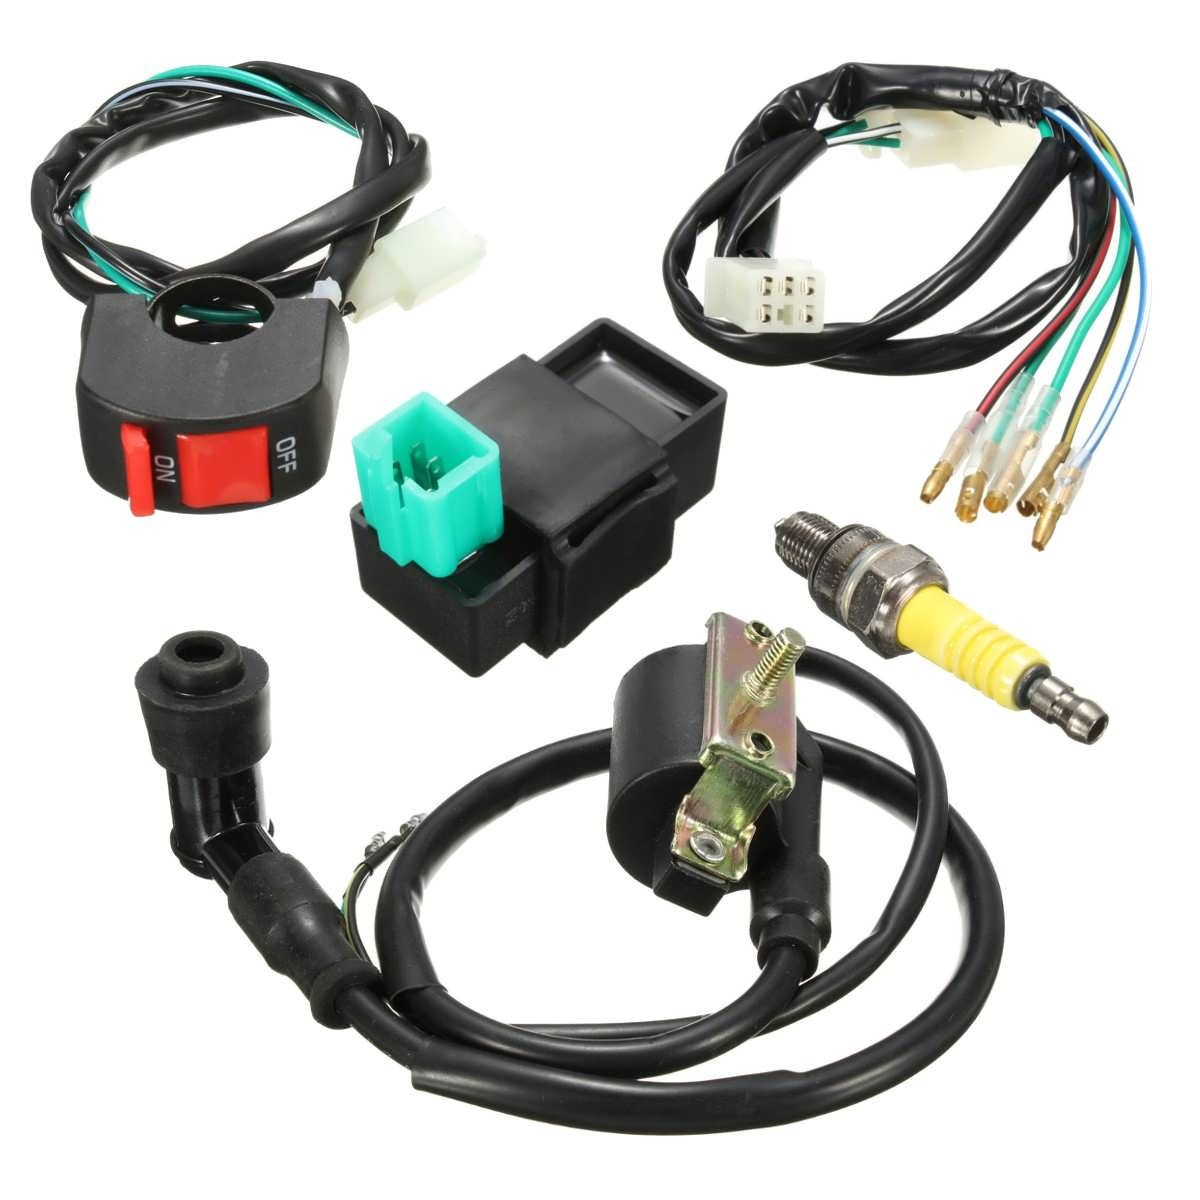 Amazing Tsb Search Thick How To Install A Car Alarm With Remote Start Shaped Car Alarm Installation Instructions Electric Guitar Wire Young Solar Power System Circuit Diagram YellowSolar Battery Wiring Diagram Wiring Loom Kill Switch Coil CDI Spark Plug Kit For 110cc 125cc ..